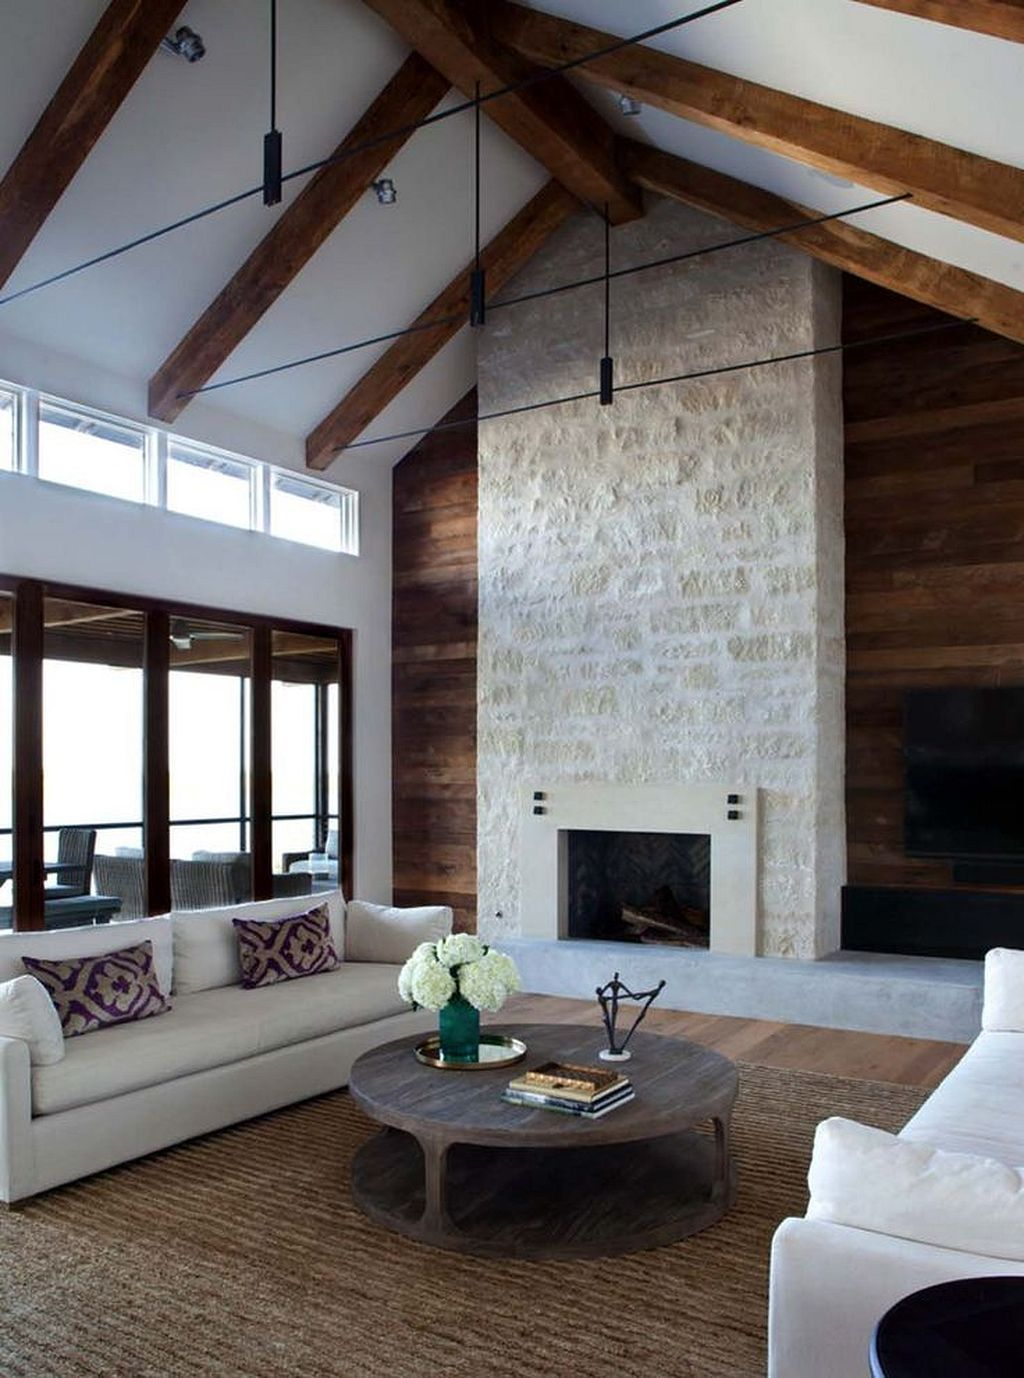 Gorgeous 20 Rustic Lake House Decorating Inspiration Https Homegardenr Com 20 Rustic Lake House Dec Farm House Living Room Modern Lake House Lakehouse Decor #rustic #lake #house #living #room